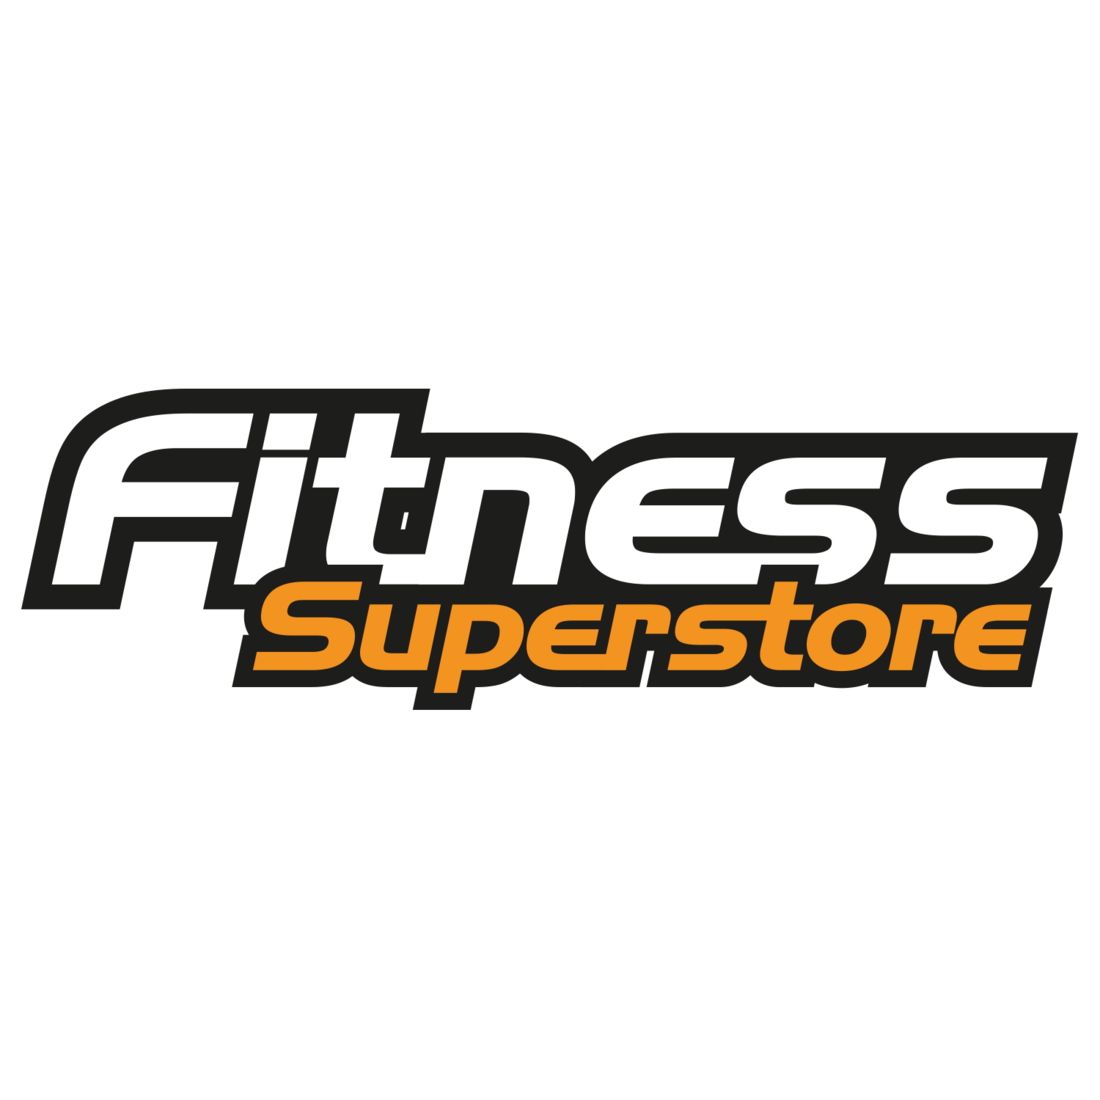 Fitness Superstore Cycle Installation Service (6-9 working days. Surcharges may apply outside a 100 mile radius of Northampton)